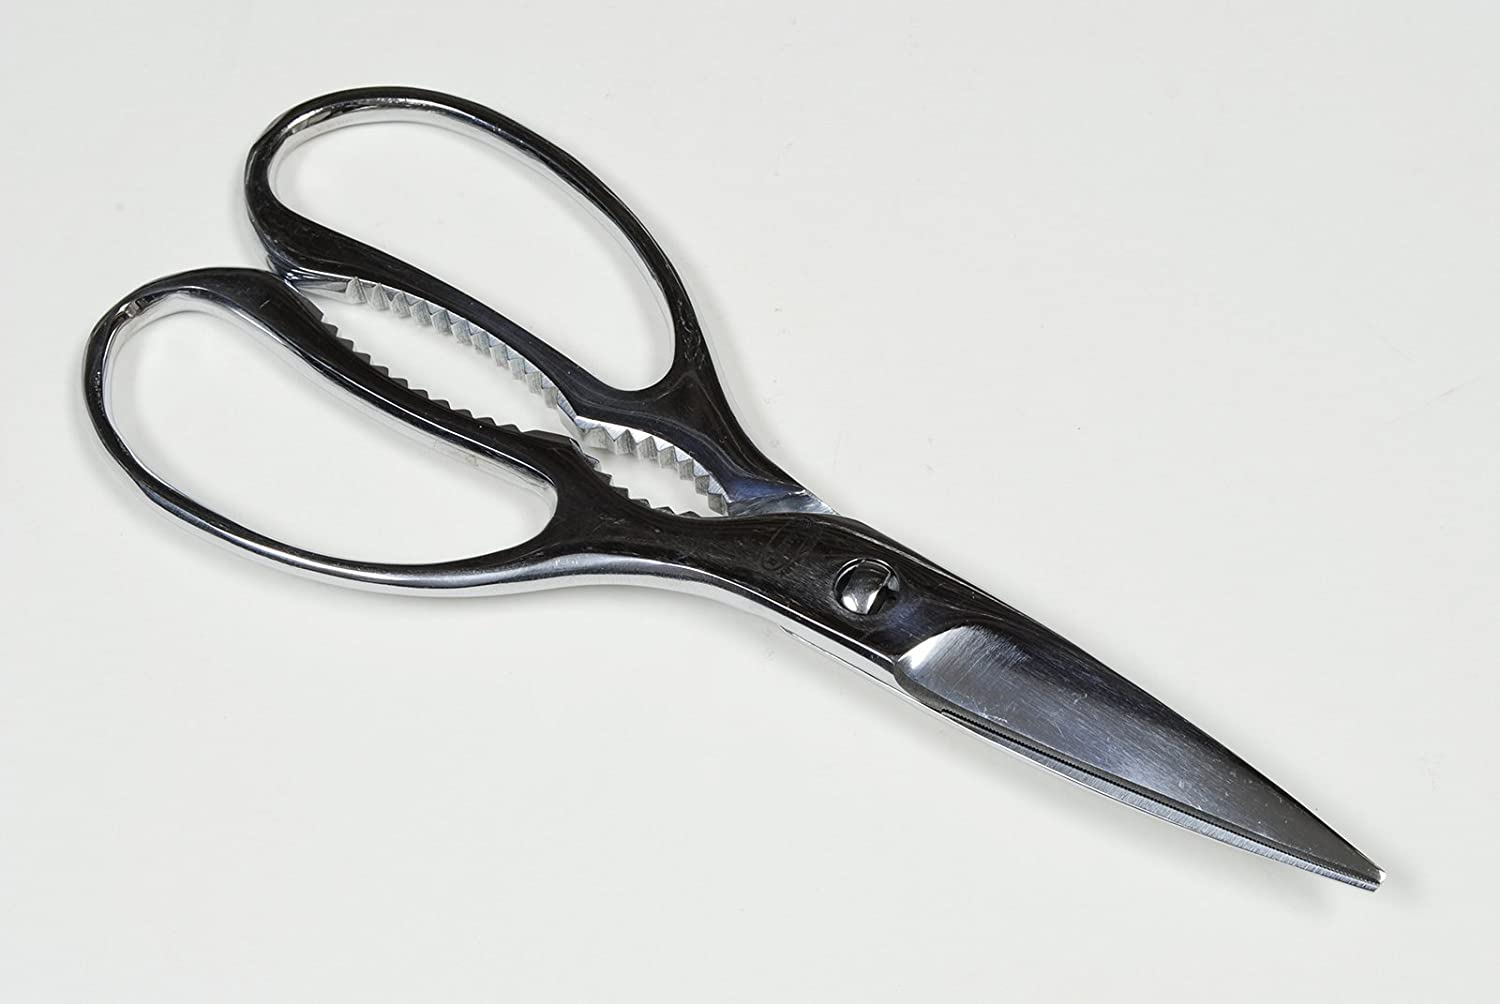 Amazon.com: Chaucer All Stainless Steel Japanese Kitchen Shears 7.5 ...